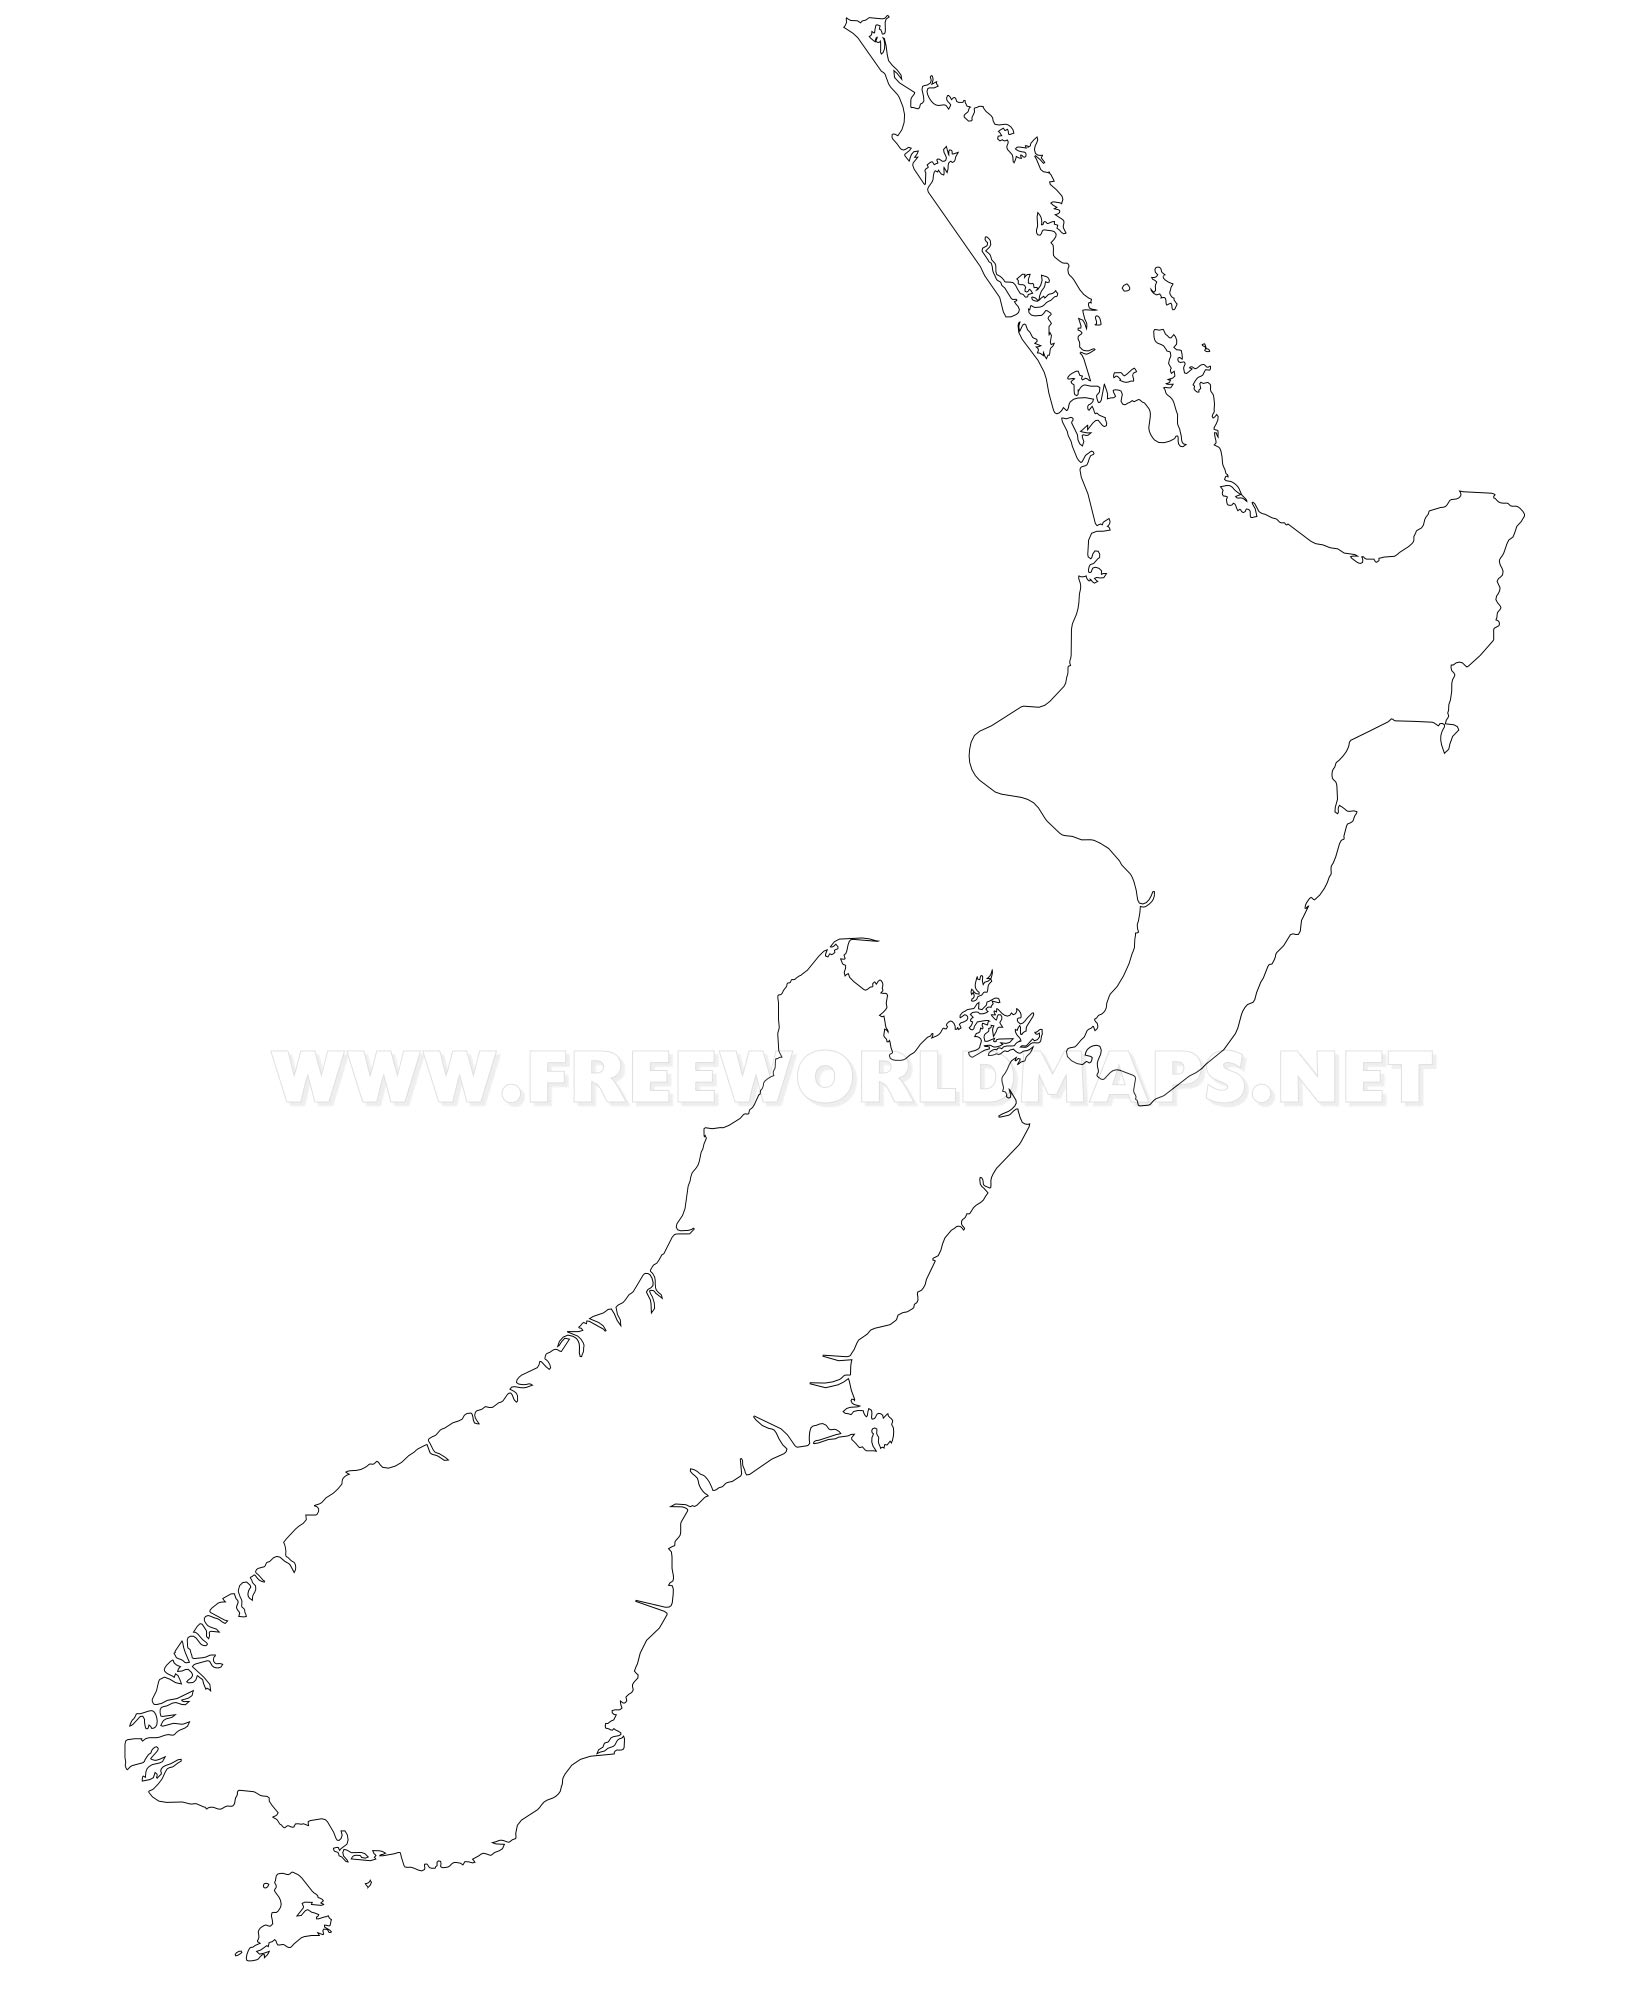 New Zealand Political Map - Oceania outline map